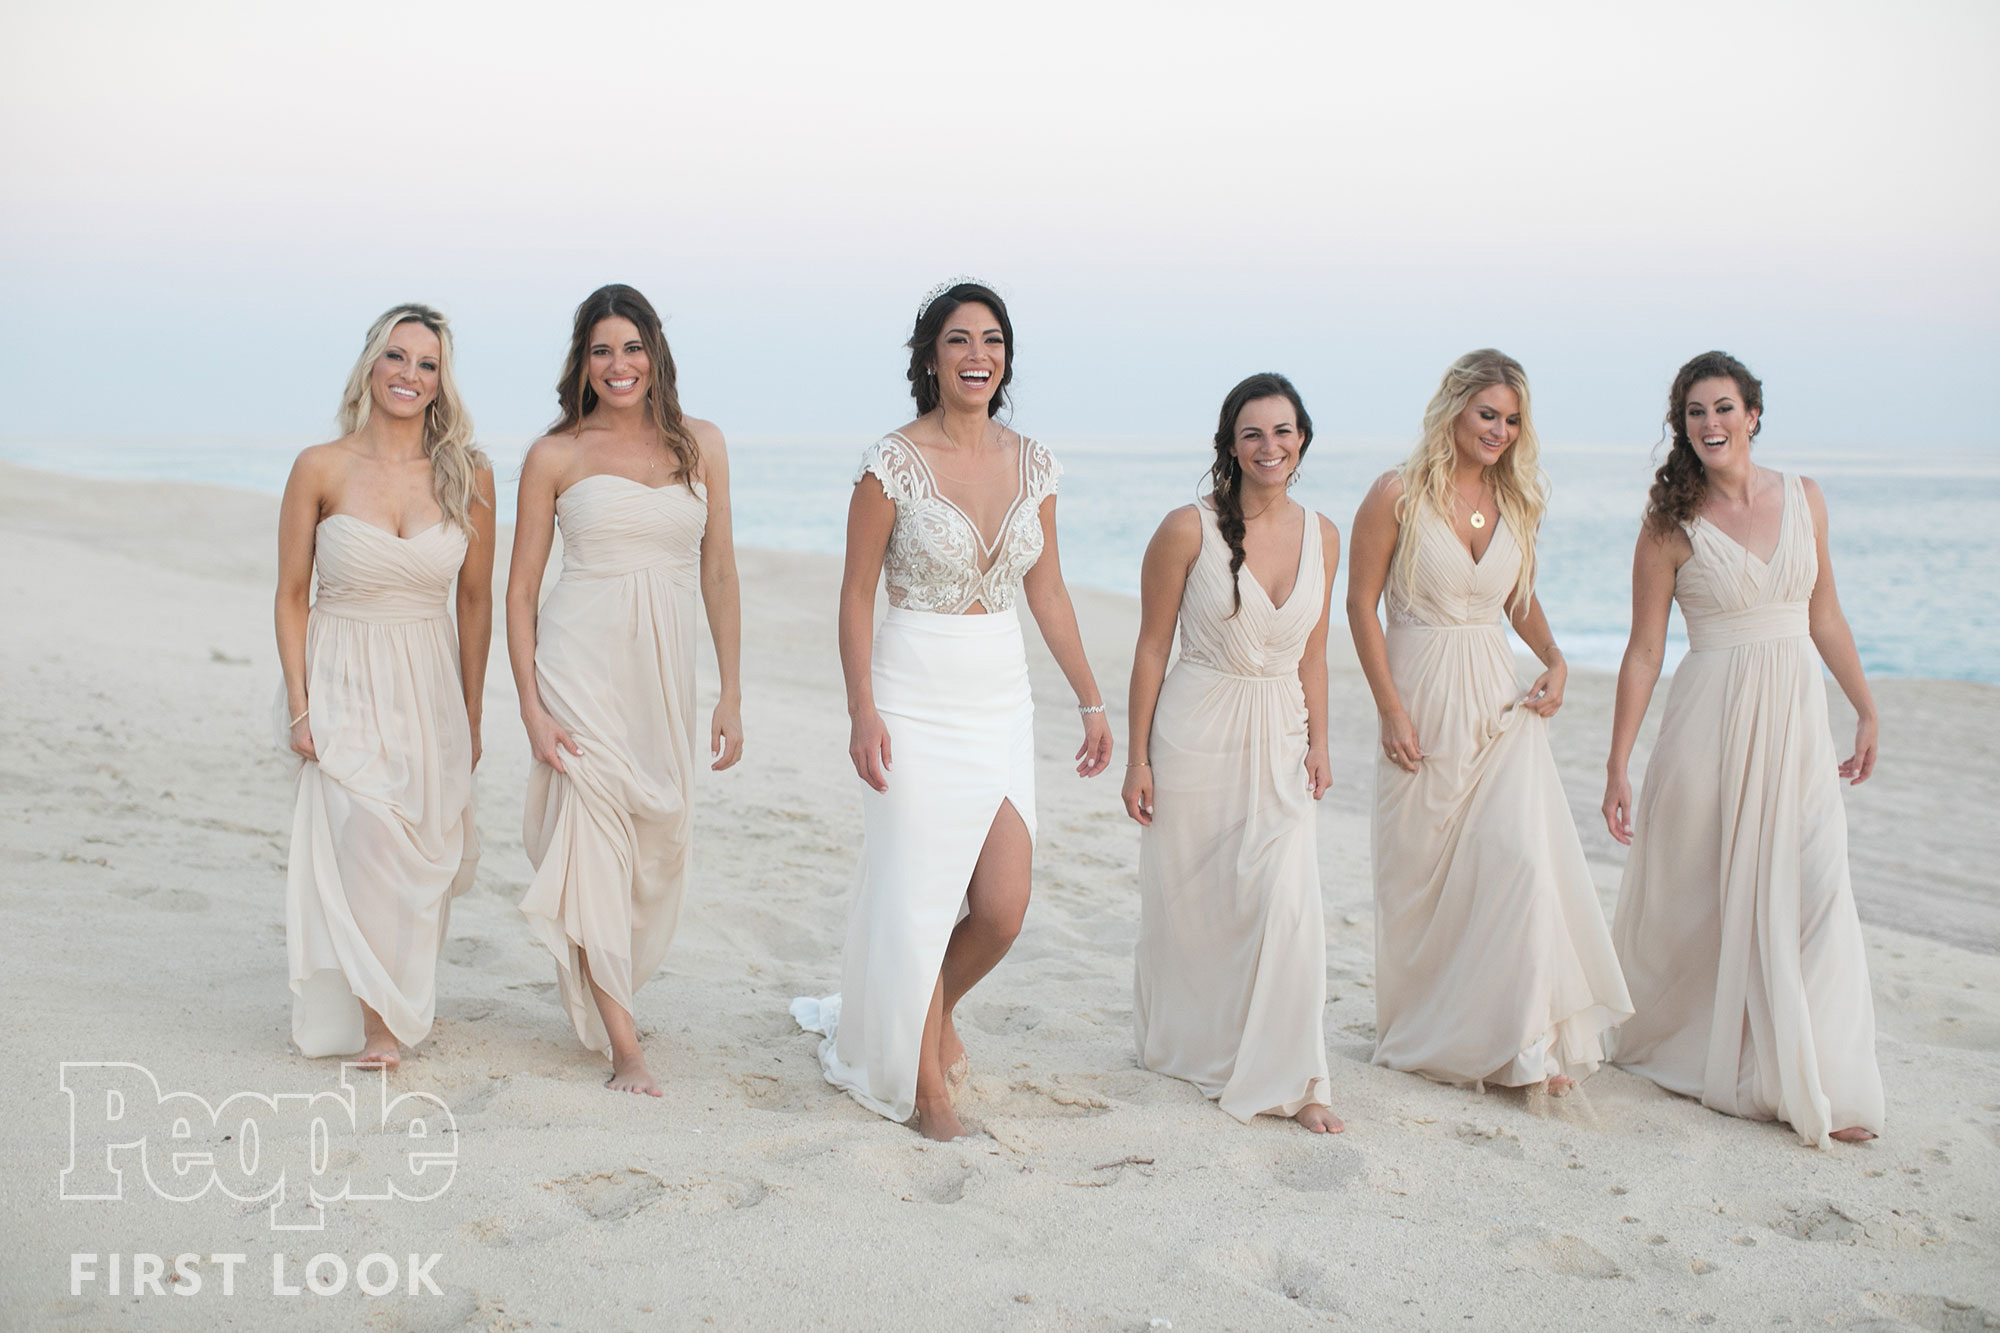 Make Bridesmaid Dress Shopping Less Painful - LEAD